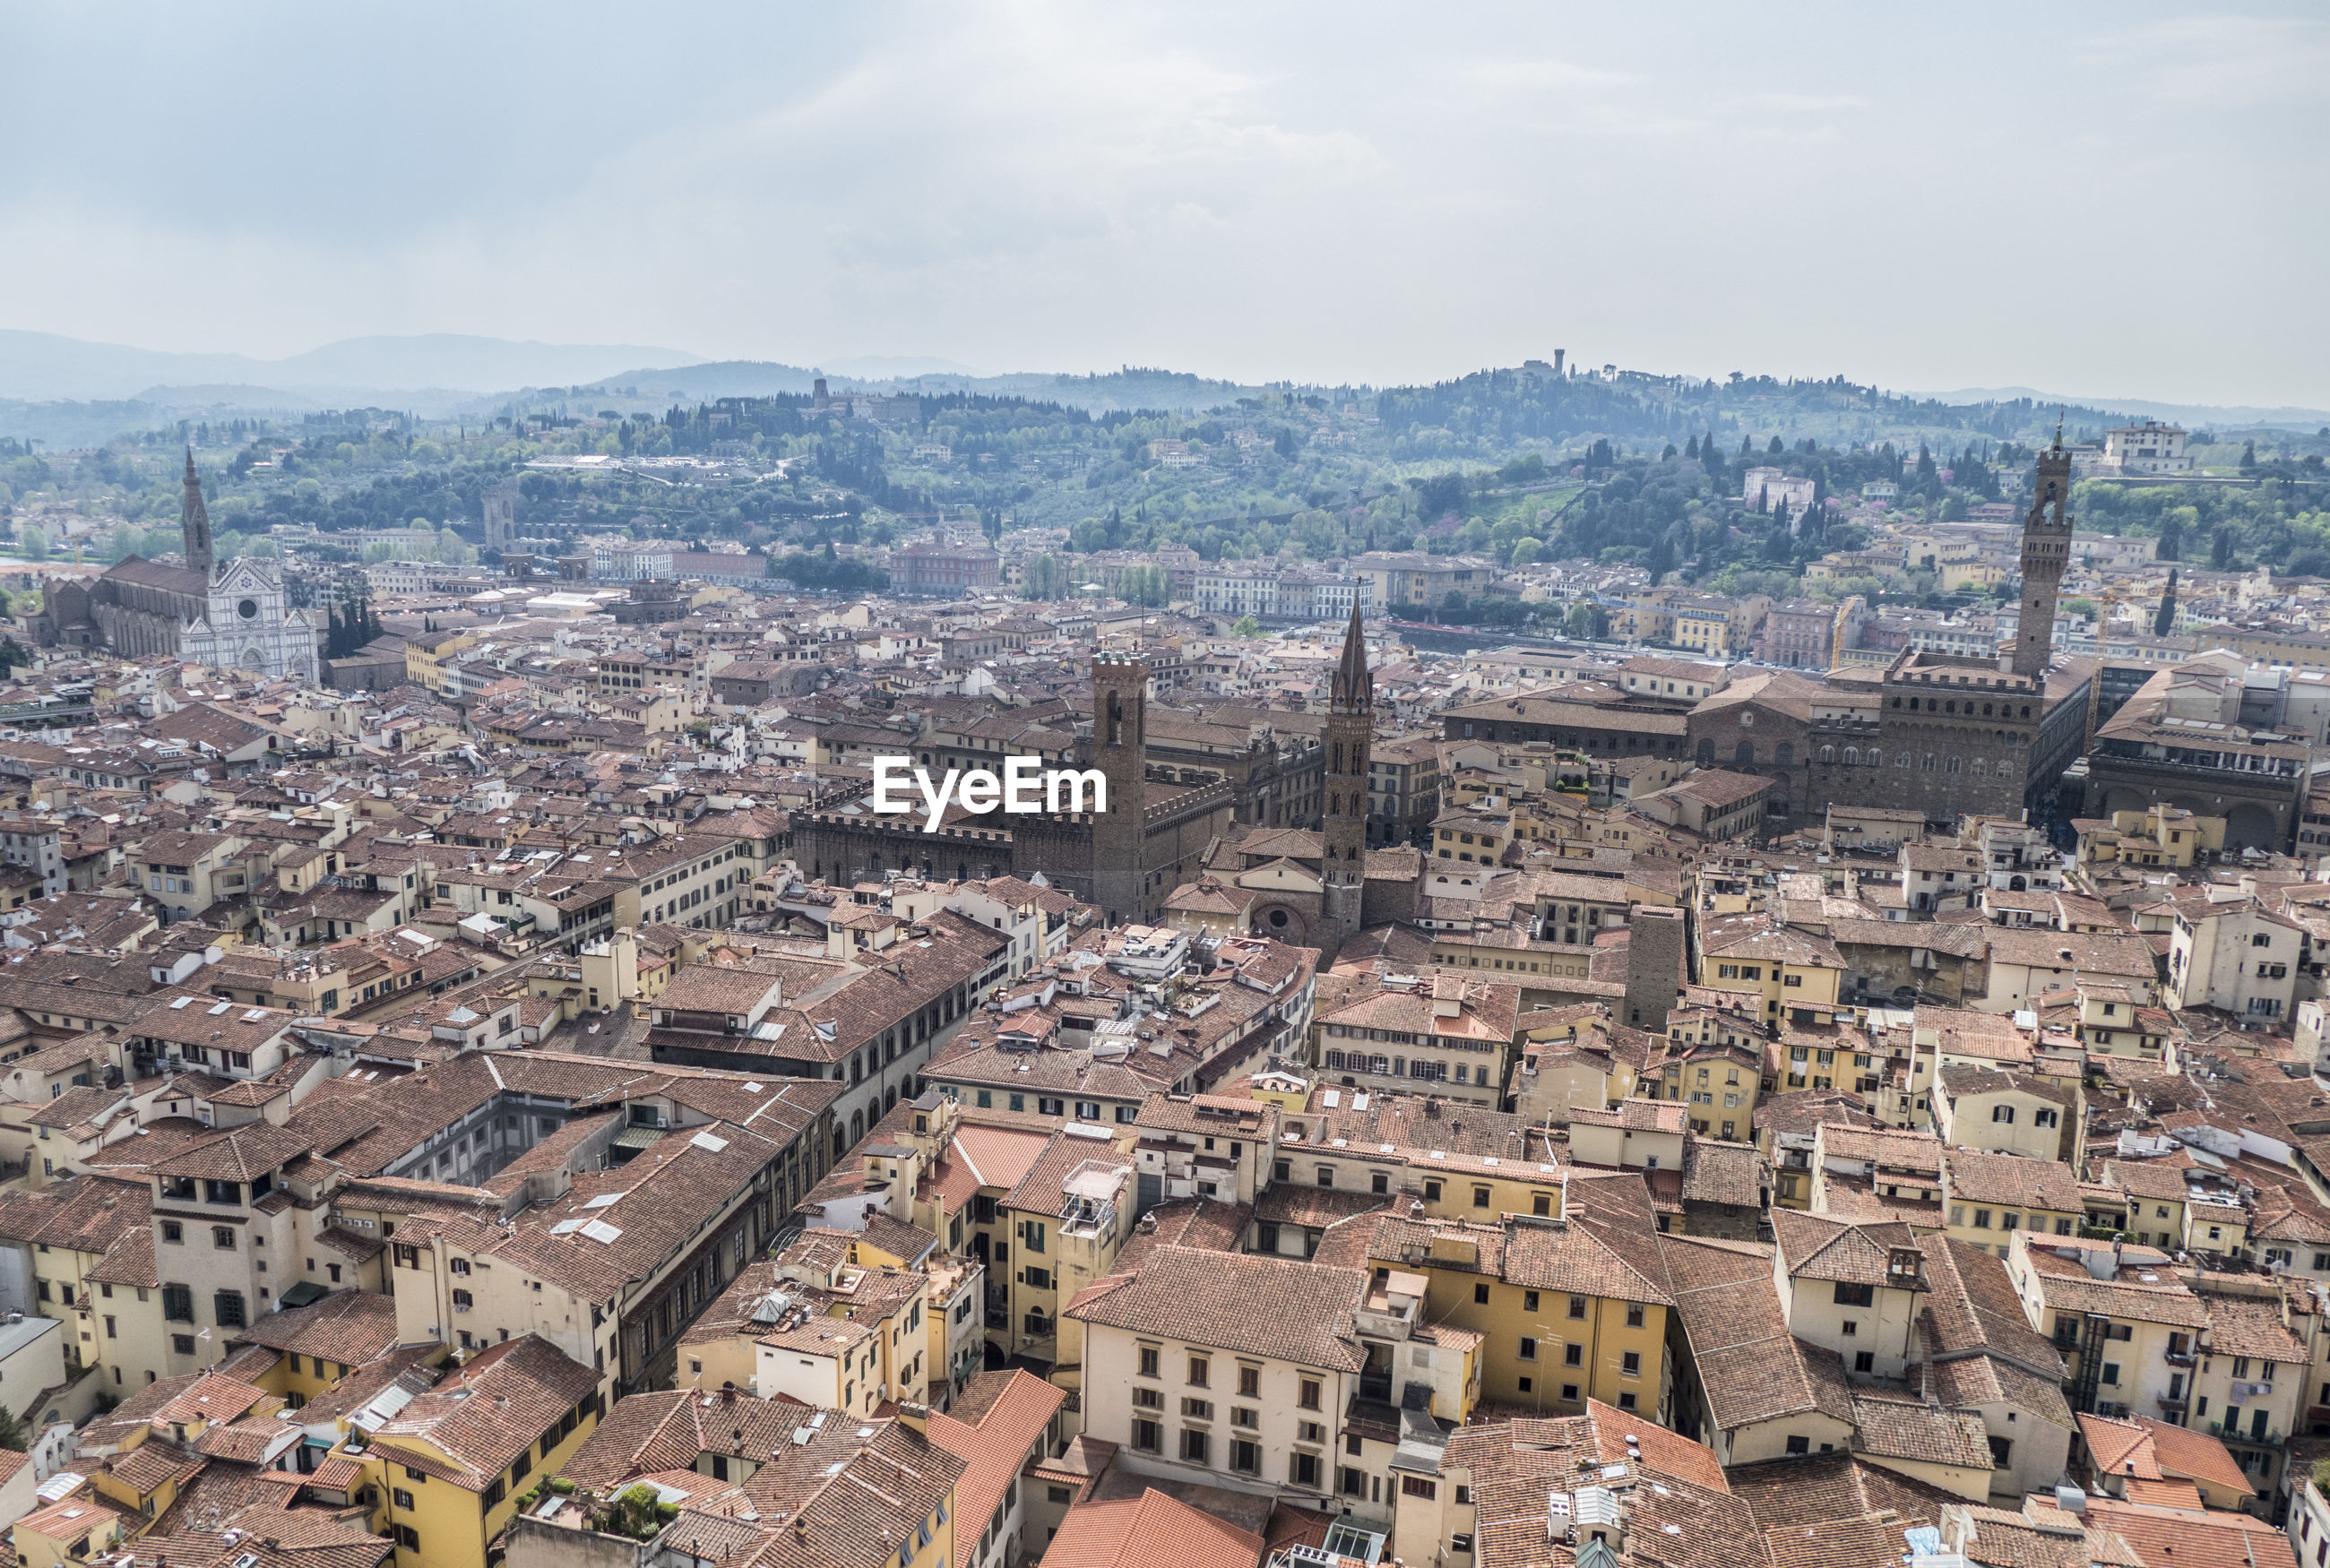 Aerial view of the historic center of florence with so many monuments